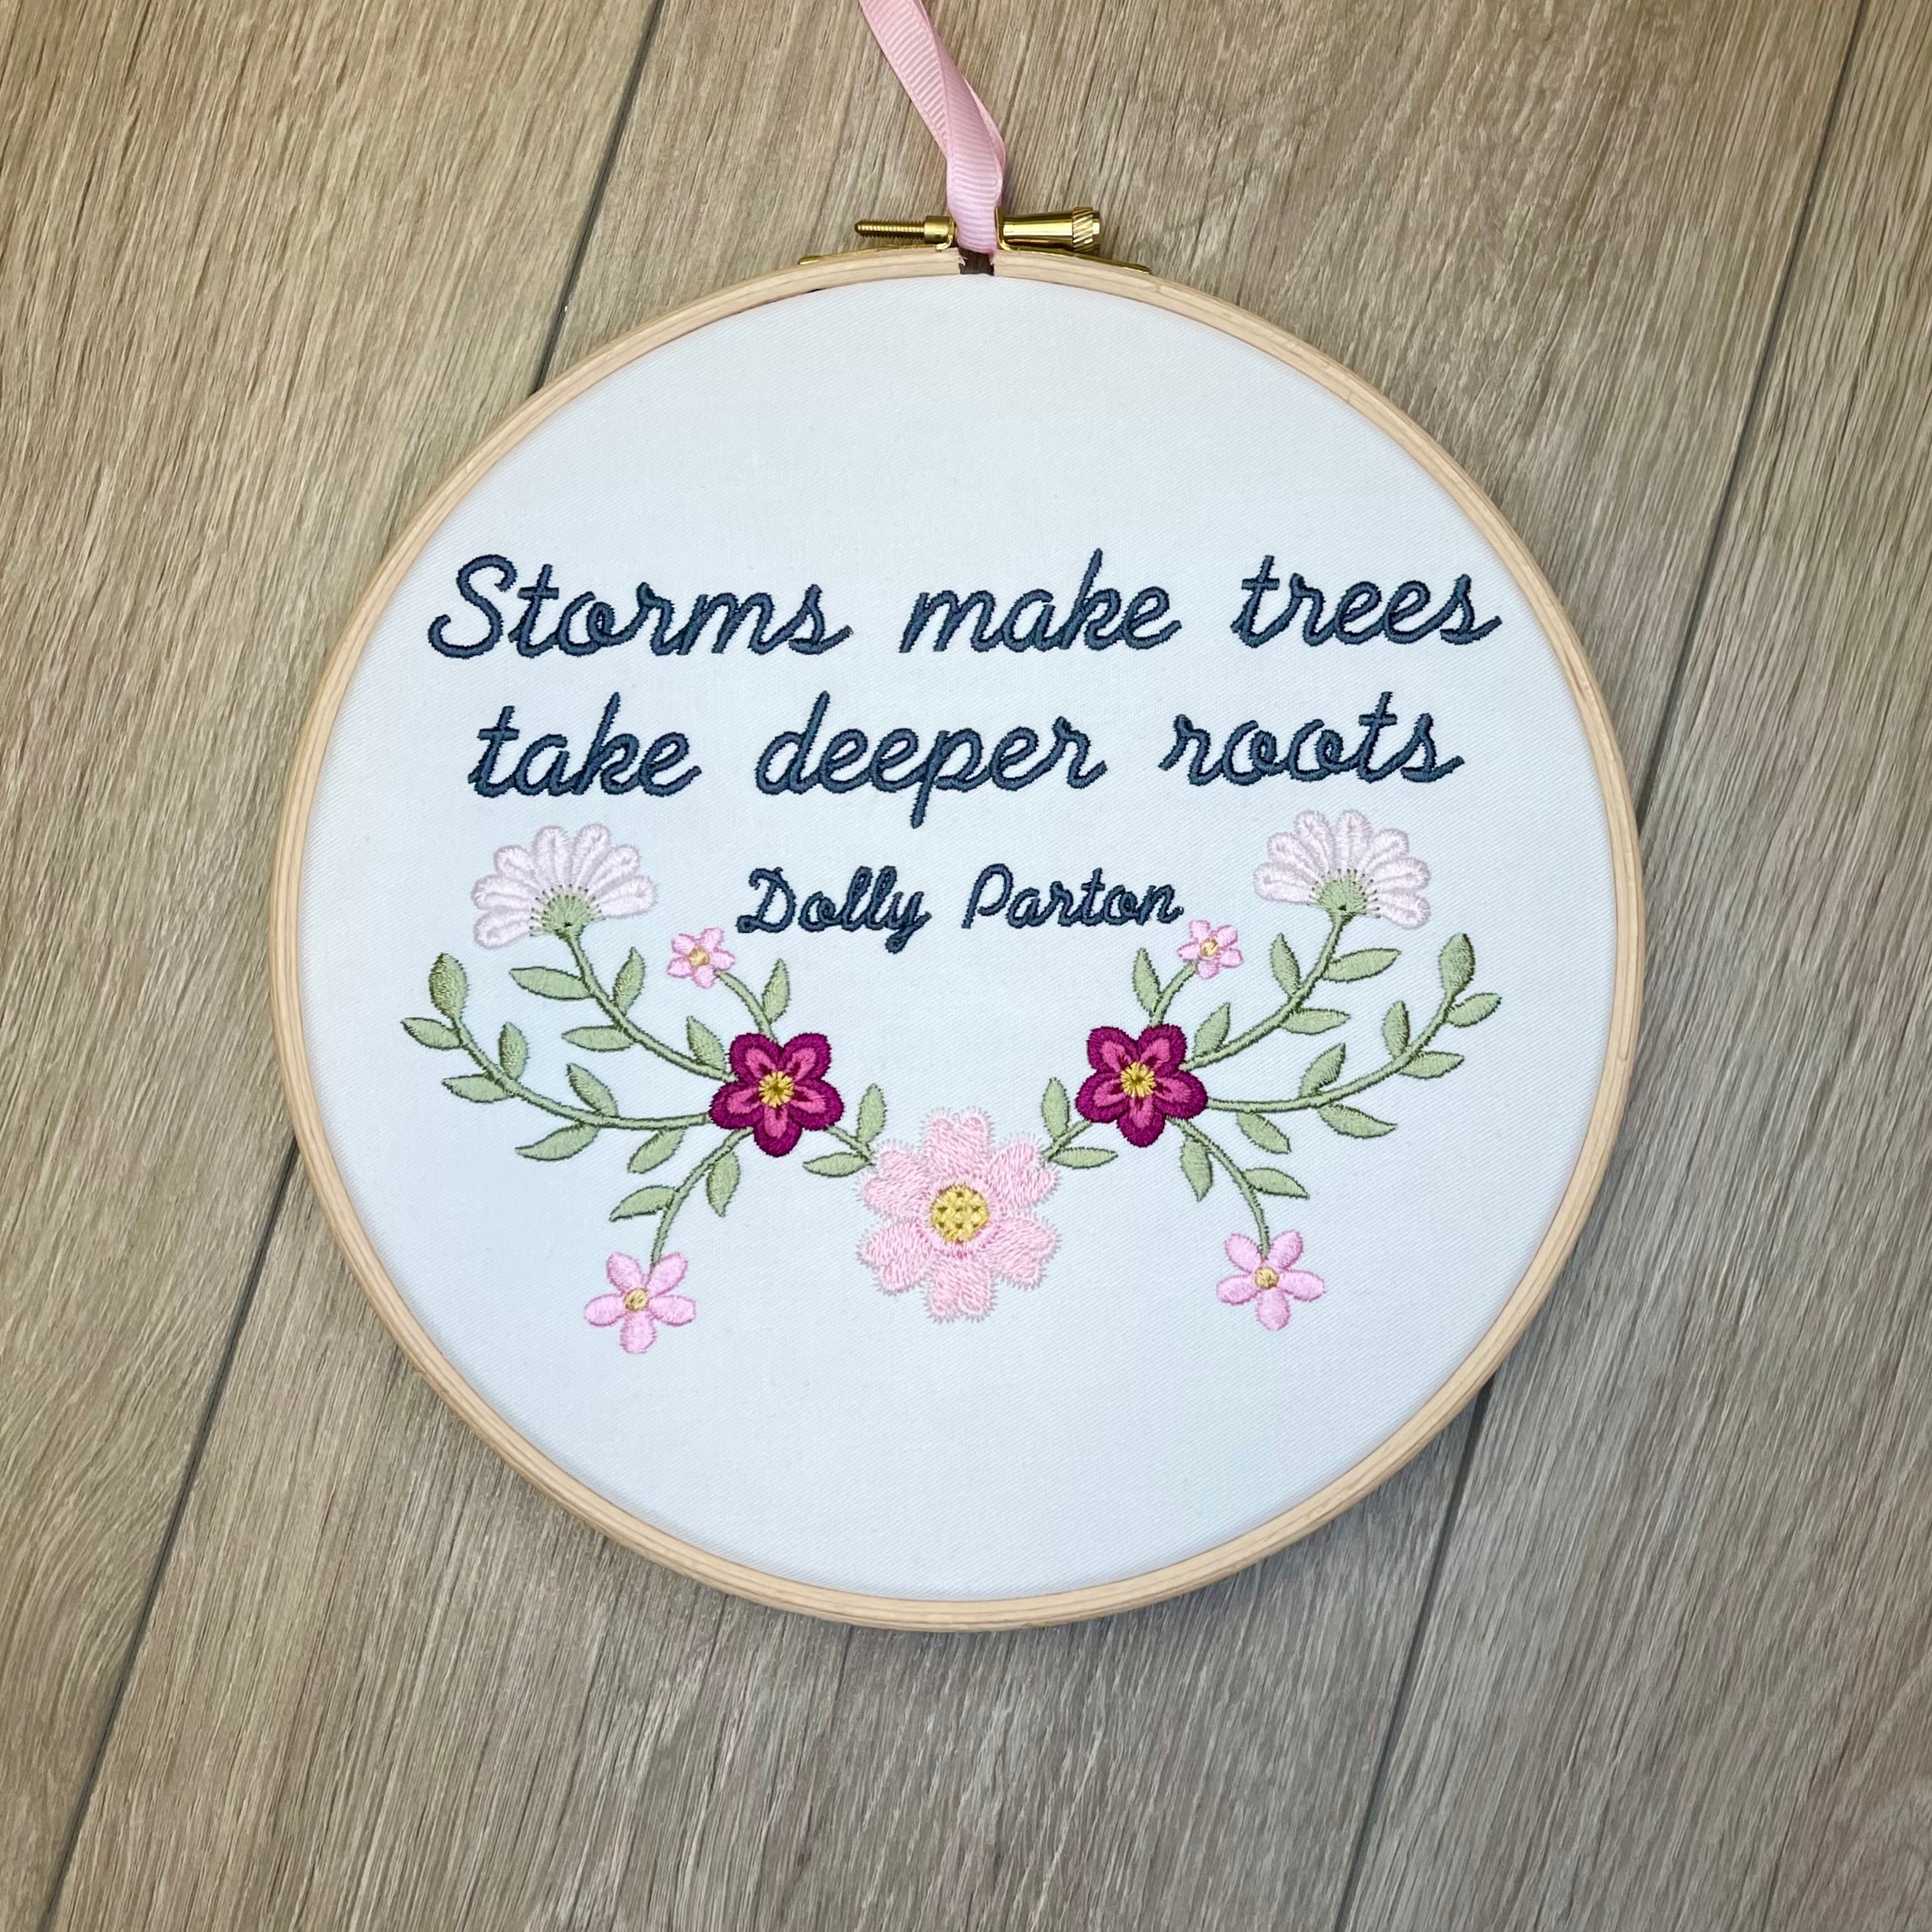 Storms make trees take deeper roots, Dolly Parton quote Embroidery hoop art